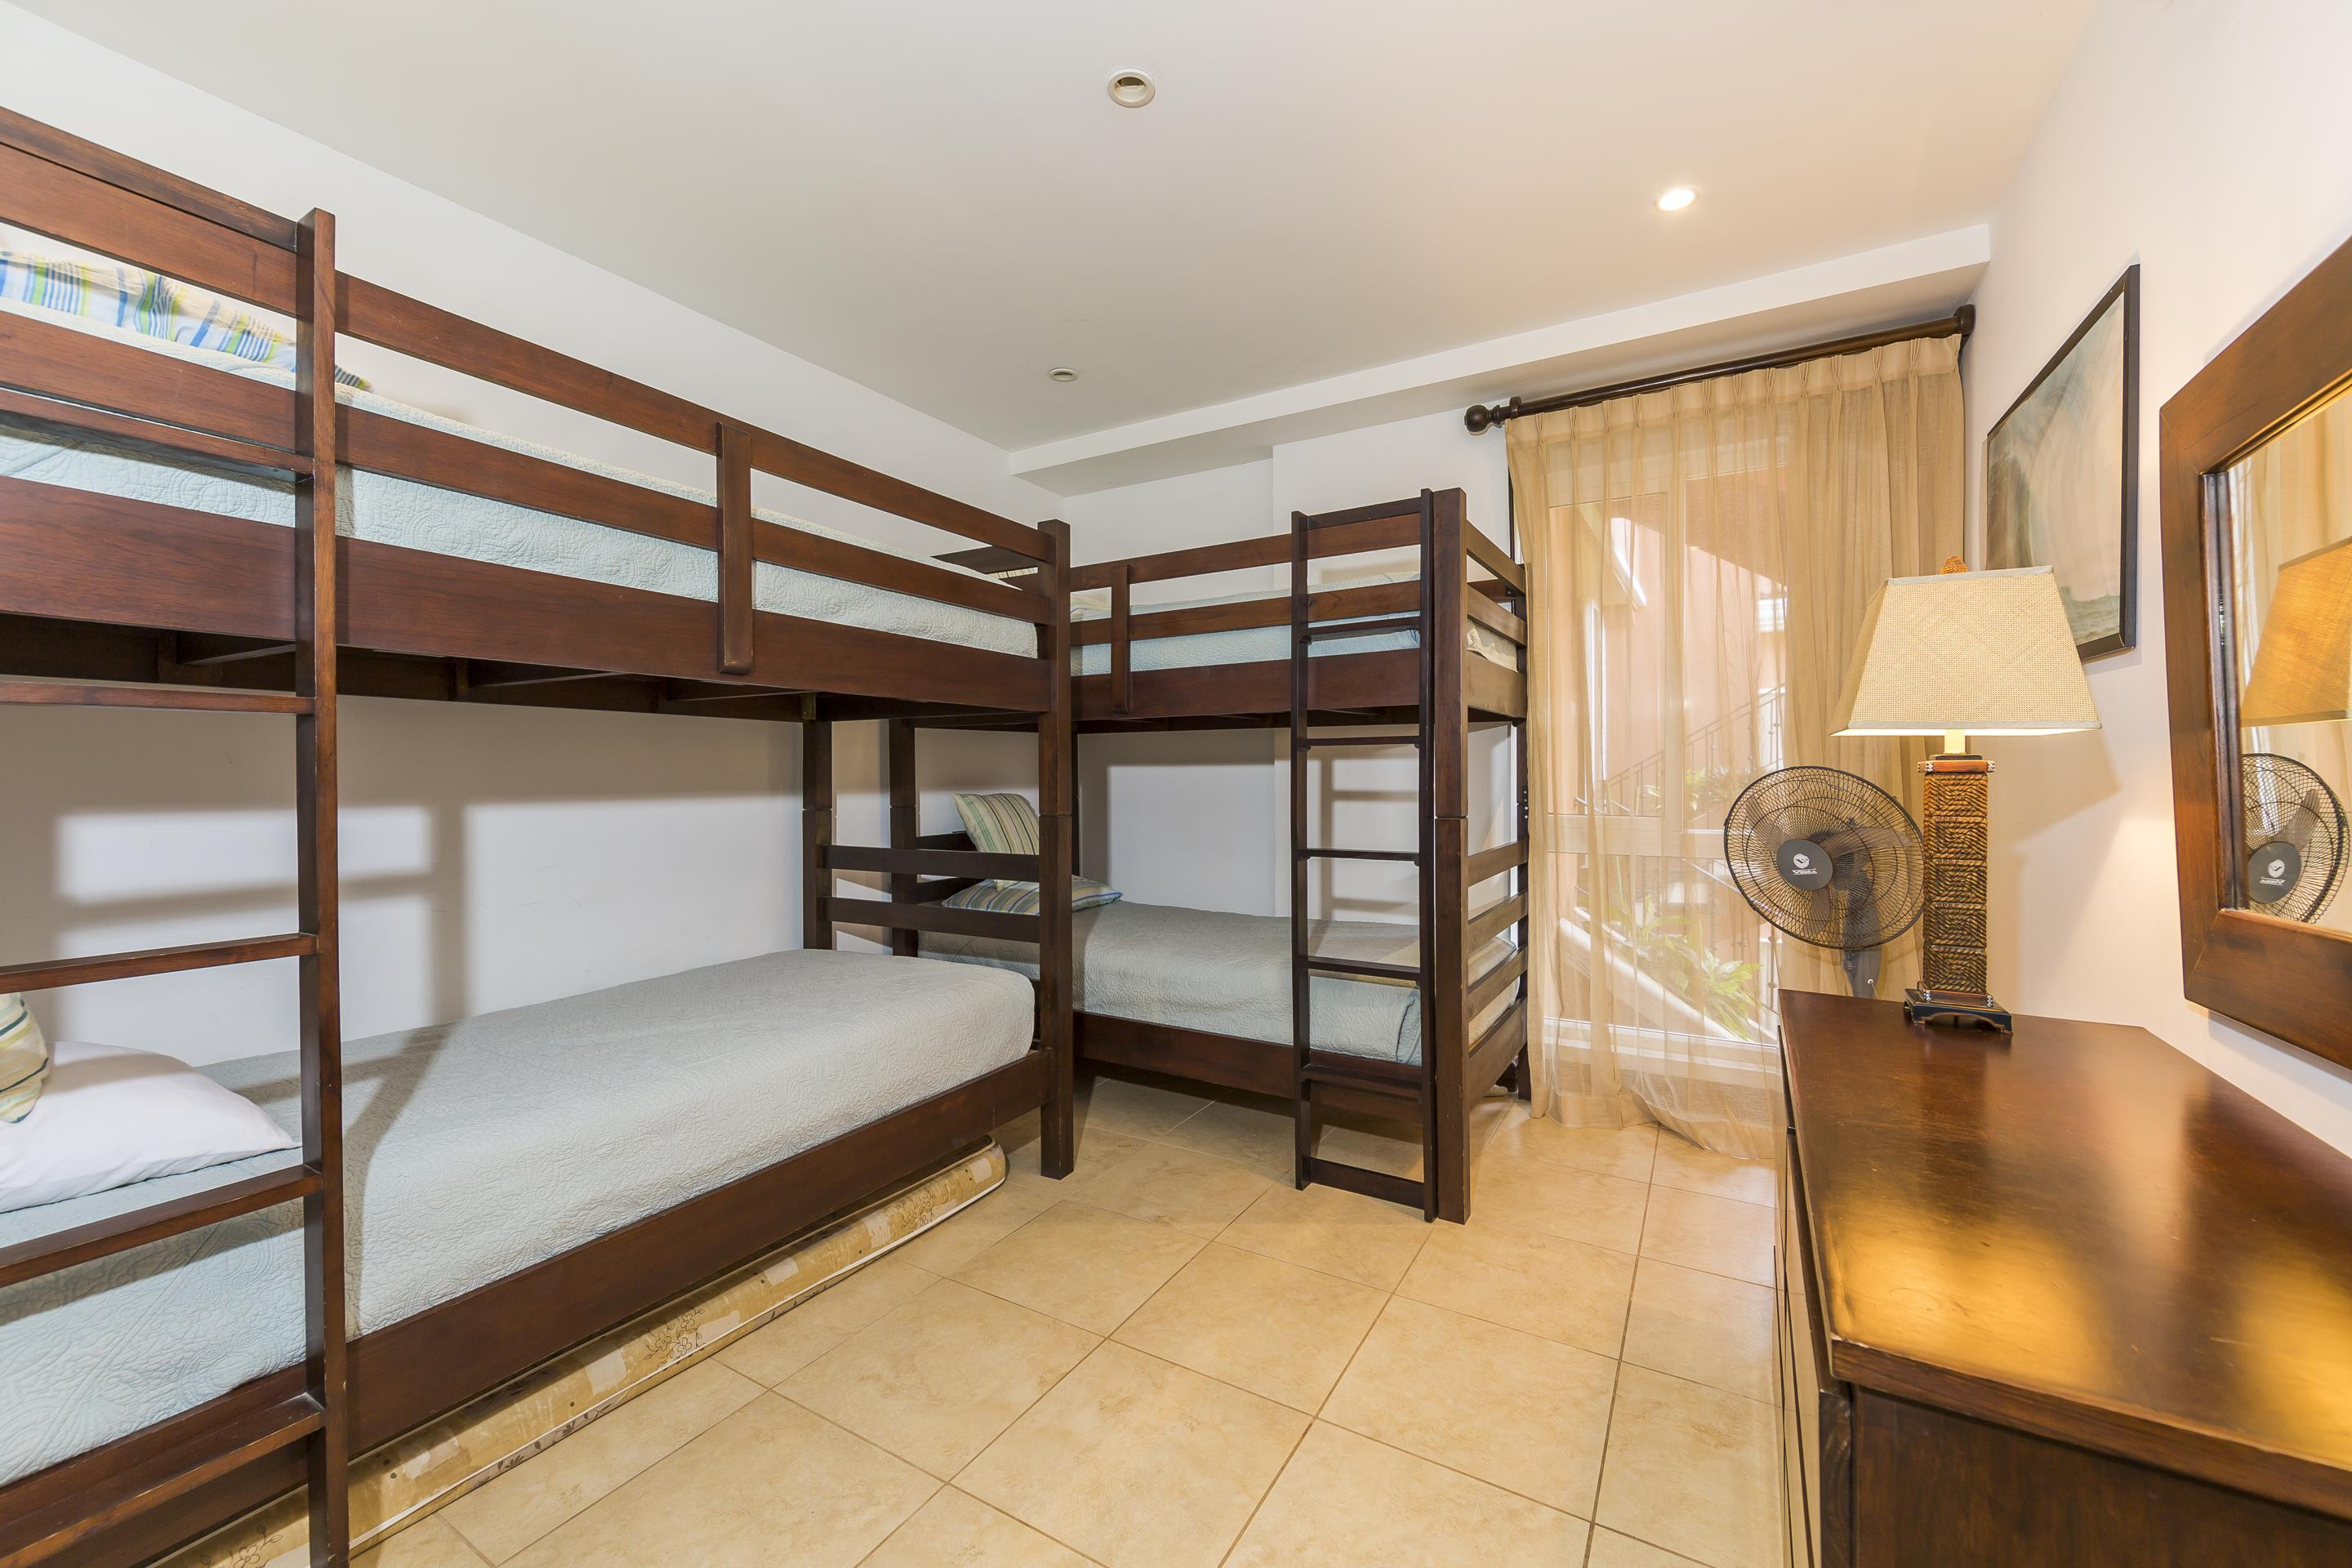 The youngest travelers love the bunk room